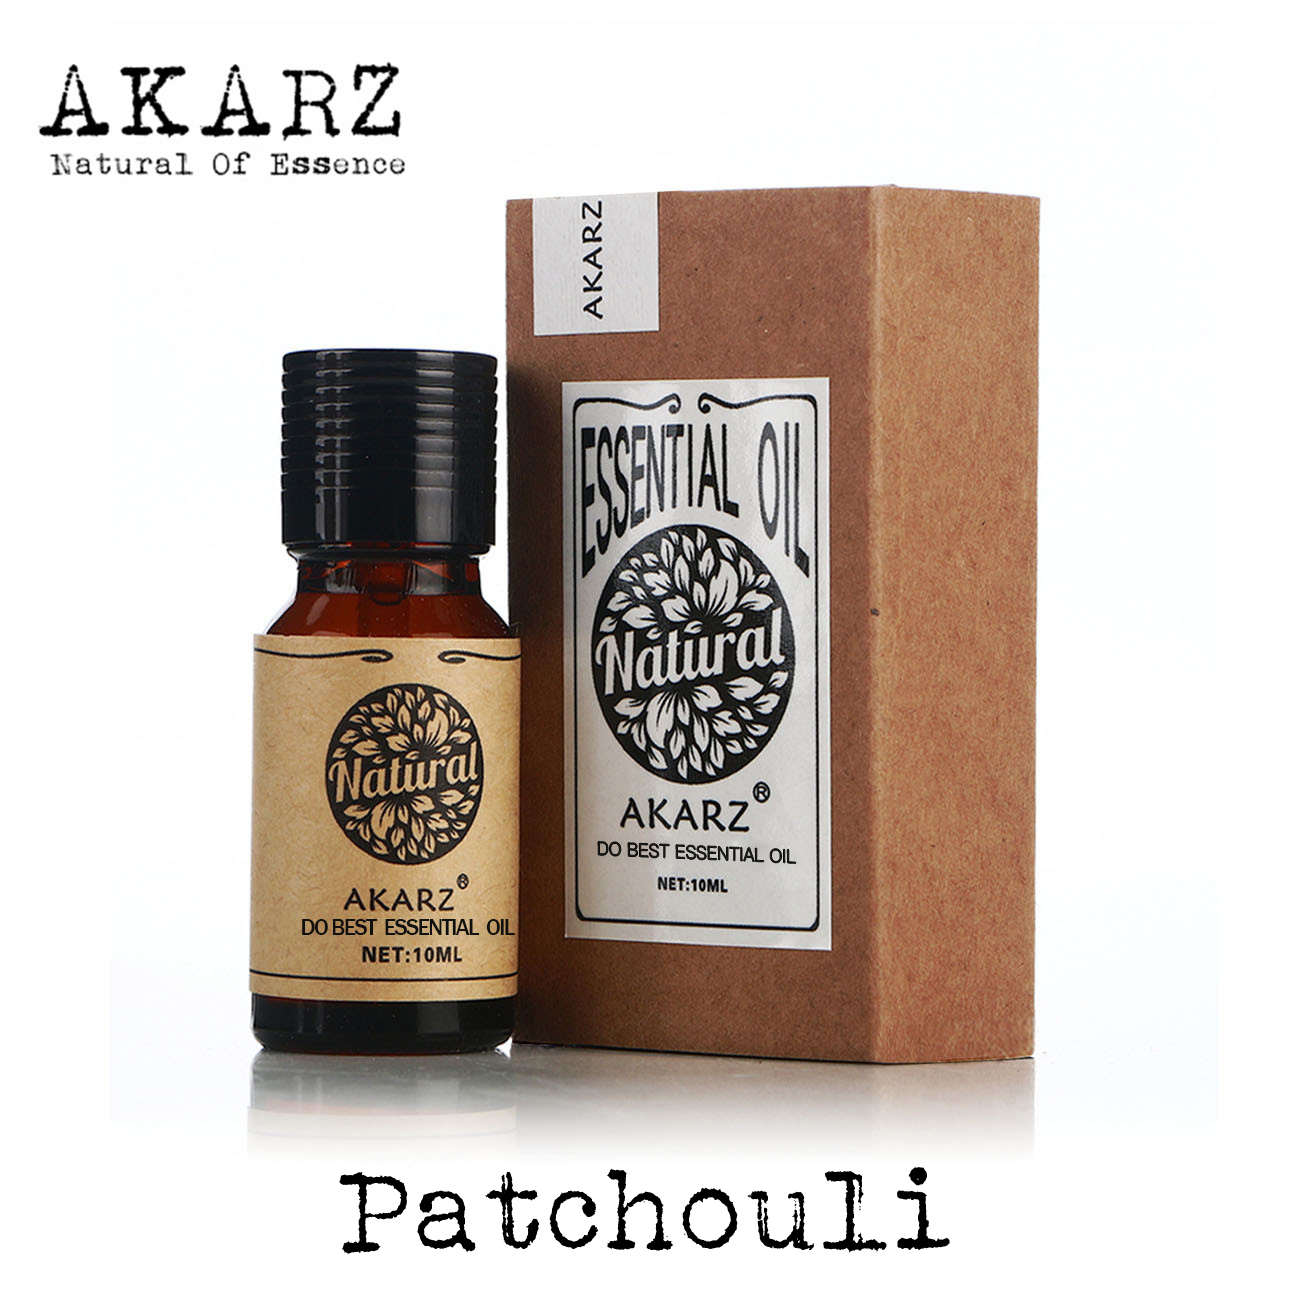 AKARZ Famous brand natural patchouli essential oil Deep cleanliness Moisture Relieve headache Cleaning pores patchouli OIL akarz famous brand natural angelica oil dilation of blood vessels promoting hepatocyte regeneration angelica essential oil